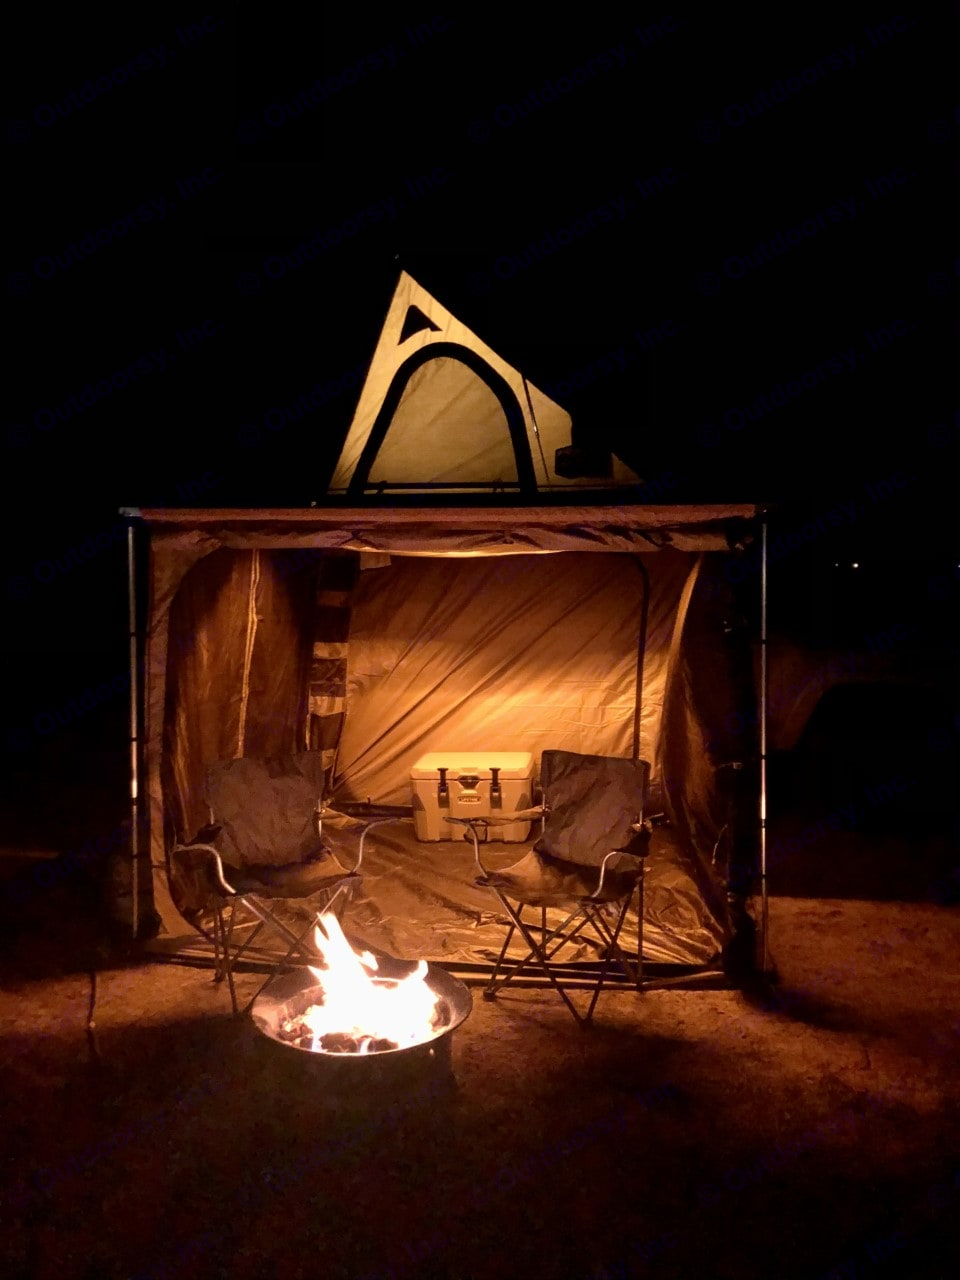 Cozy lighted awning lights for a memorable night by the fire. . Custom Camper 2021